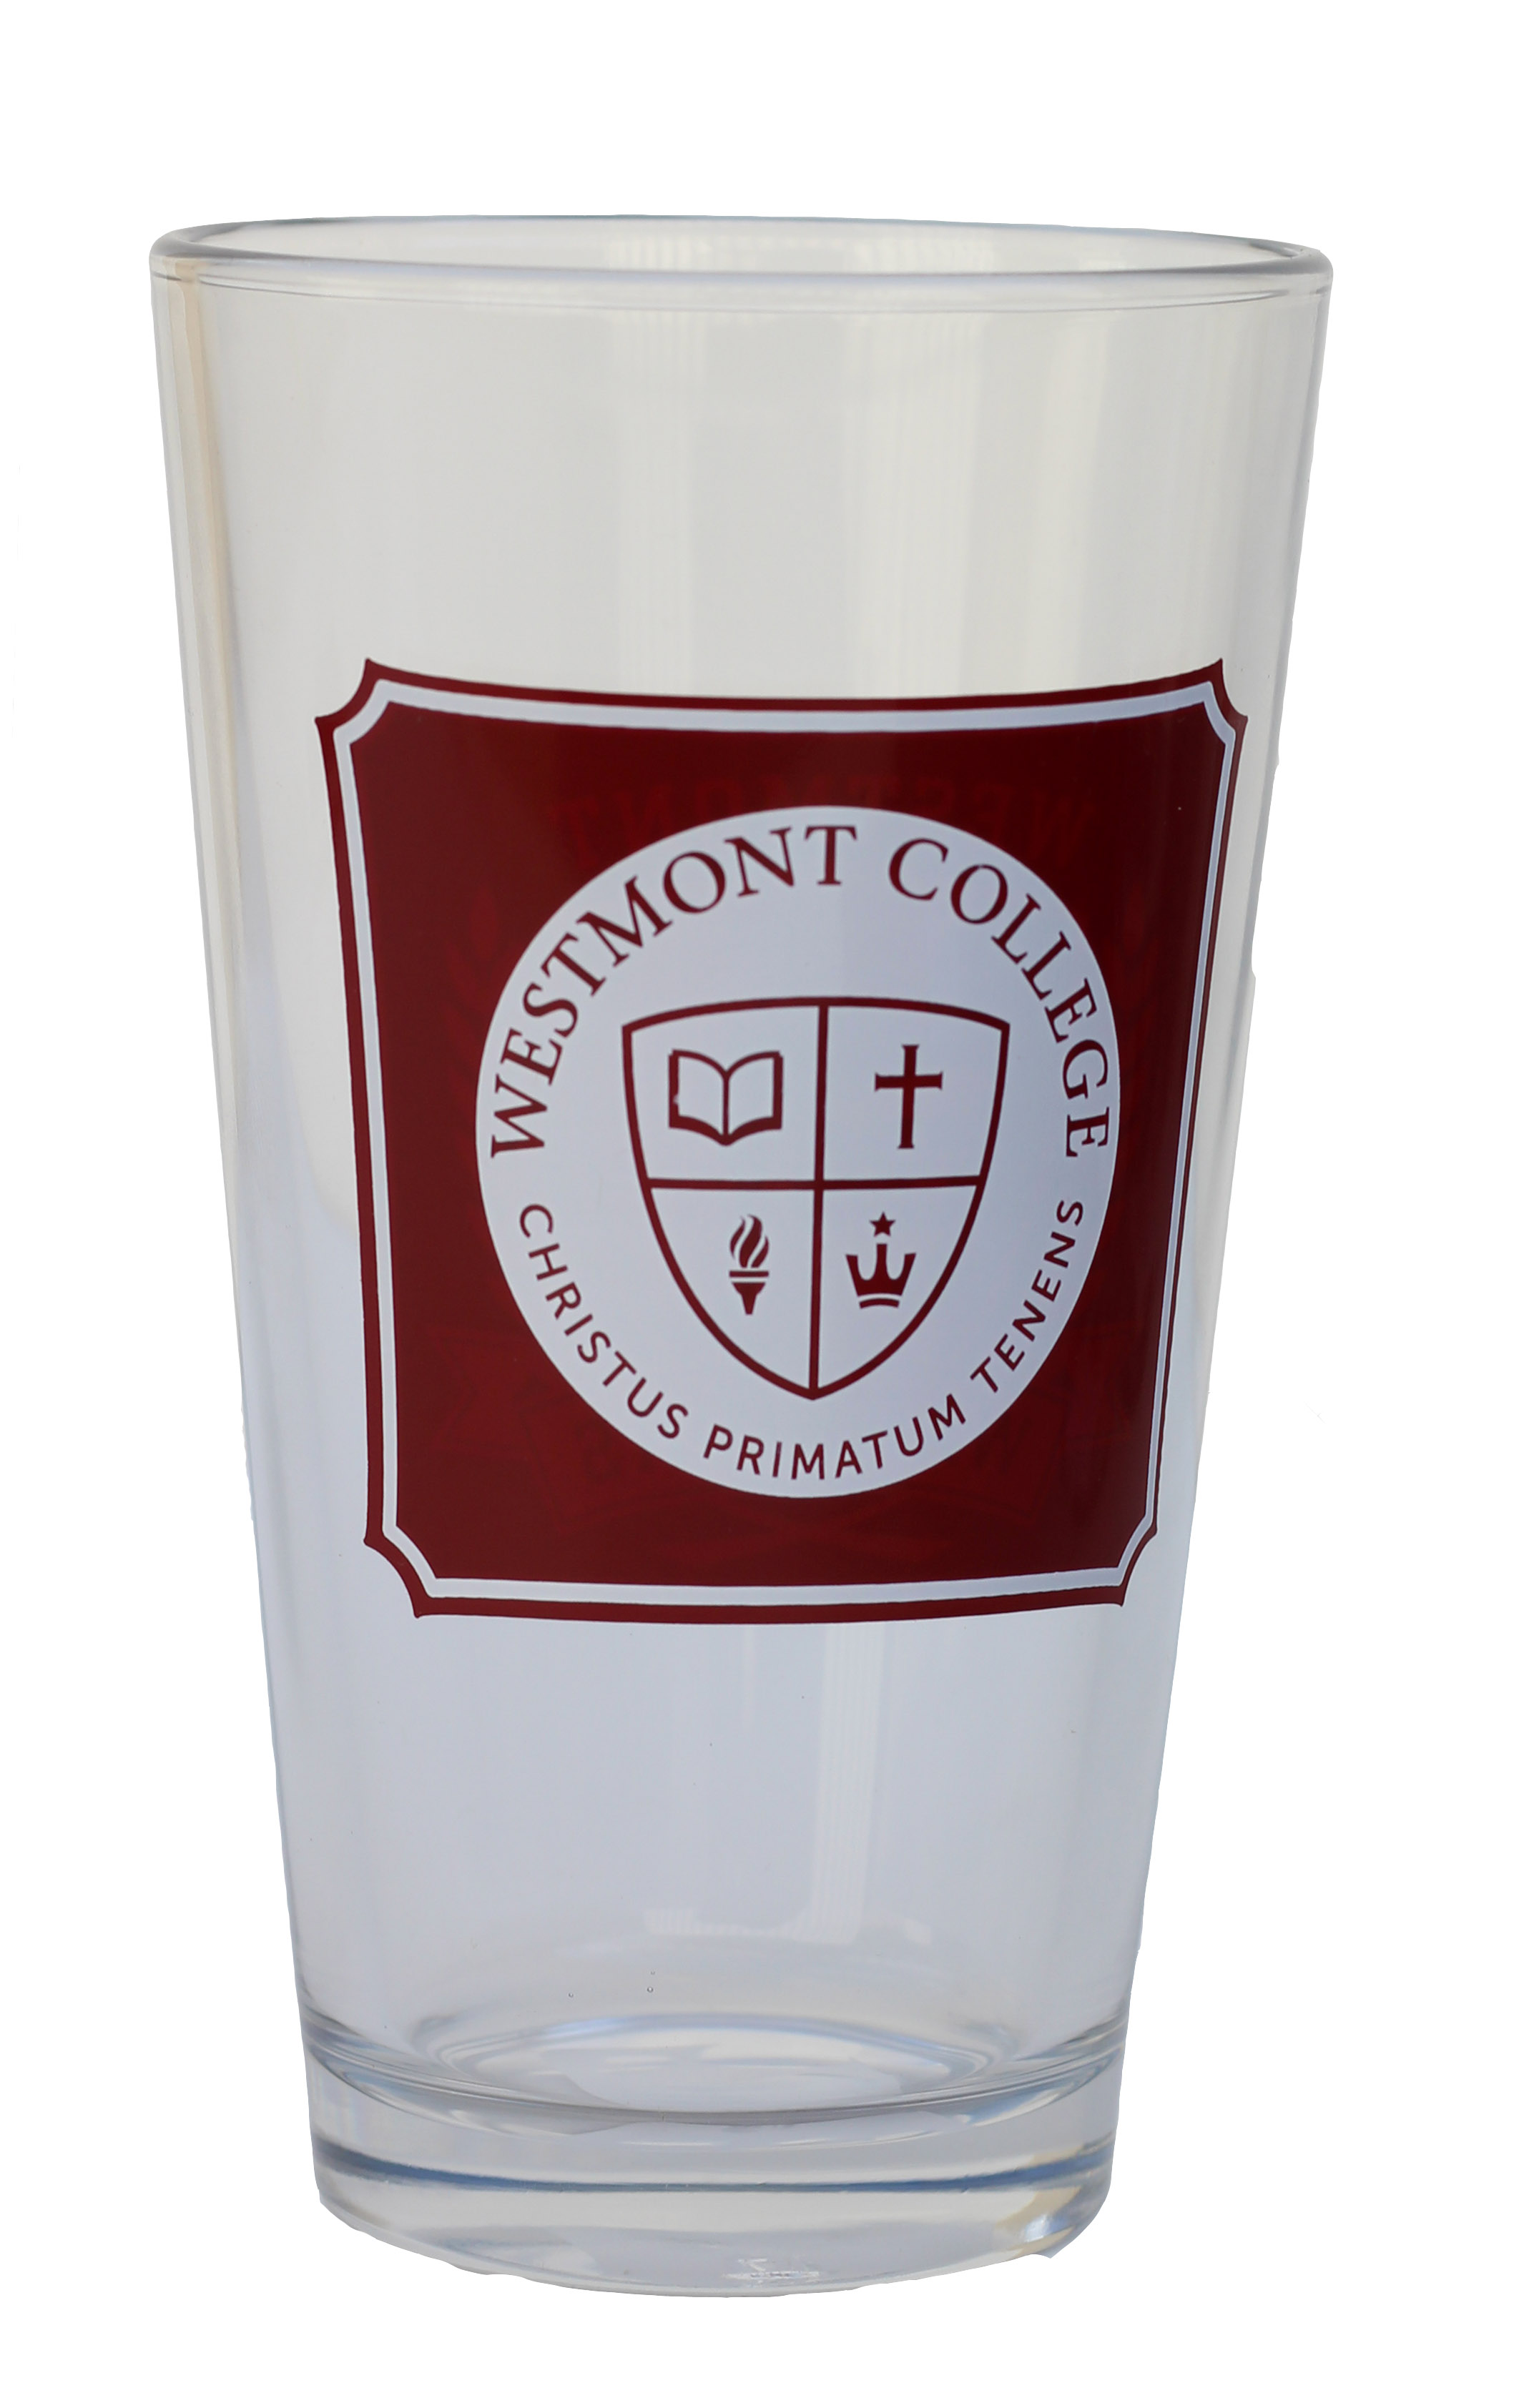 Image for the Westmont Double View Pub Glass product